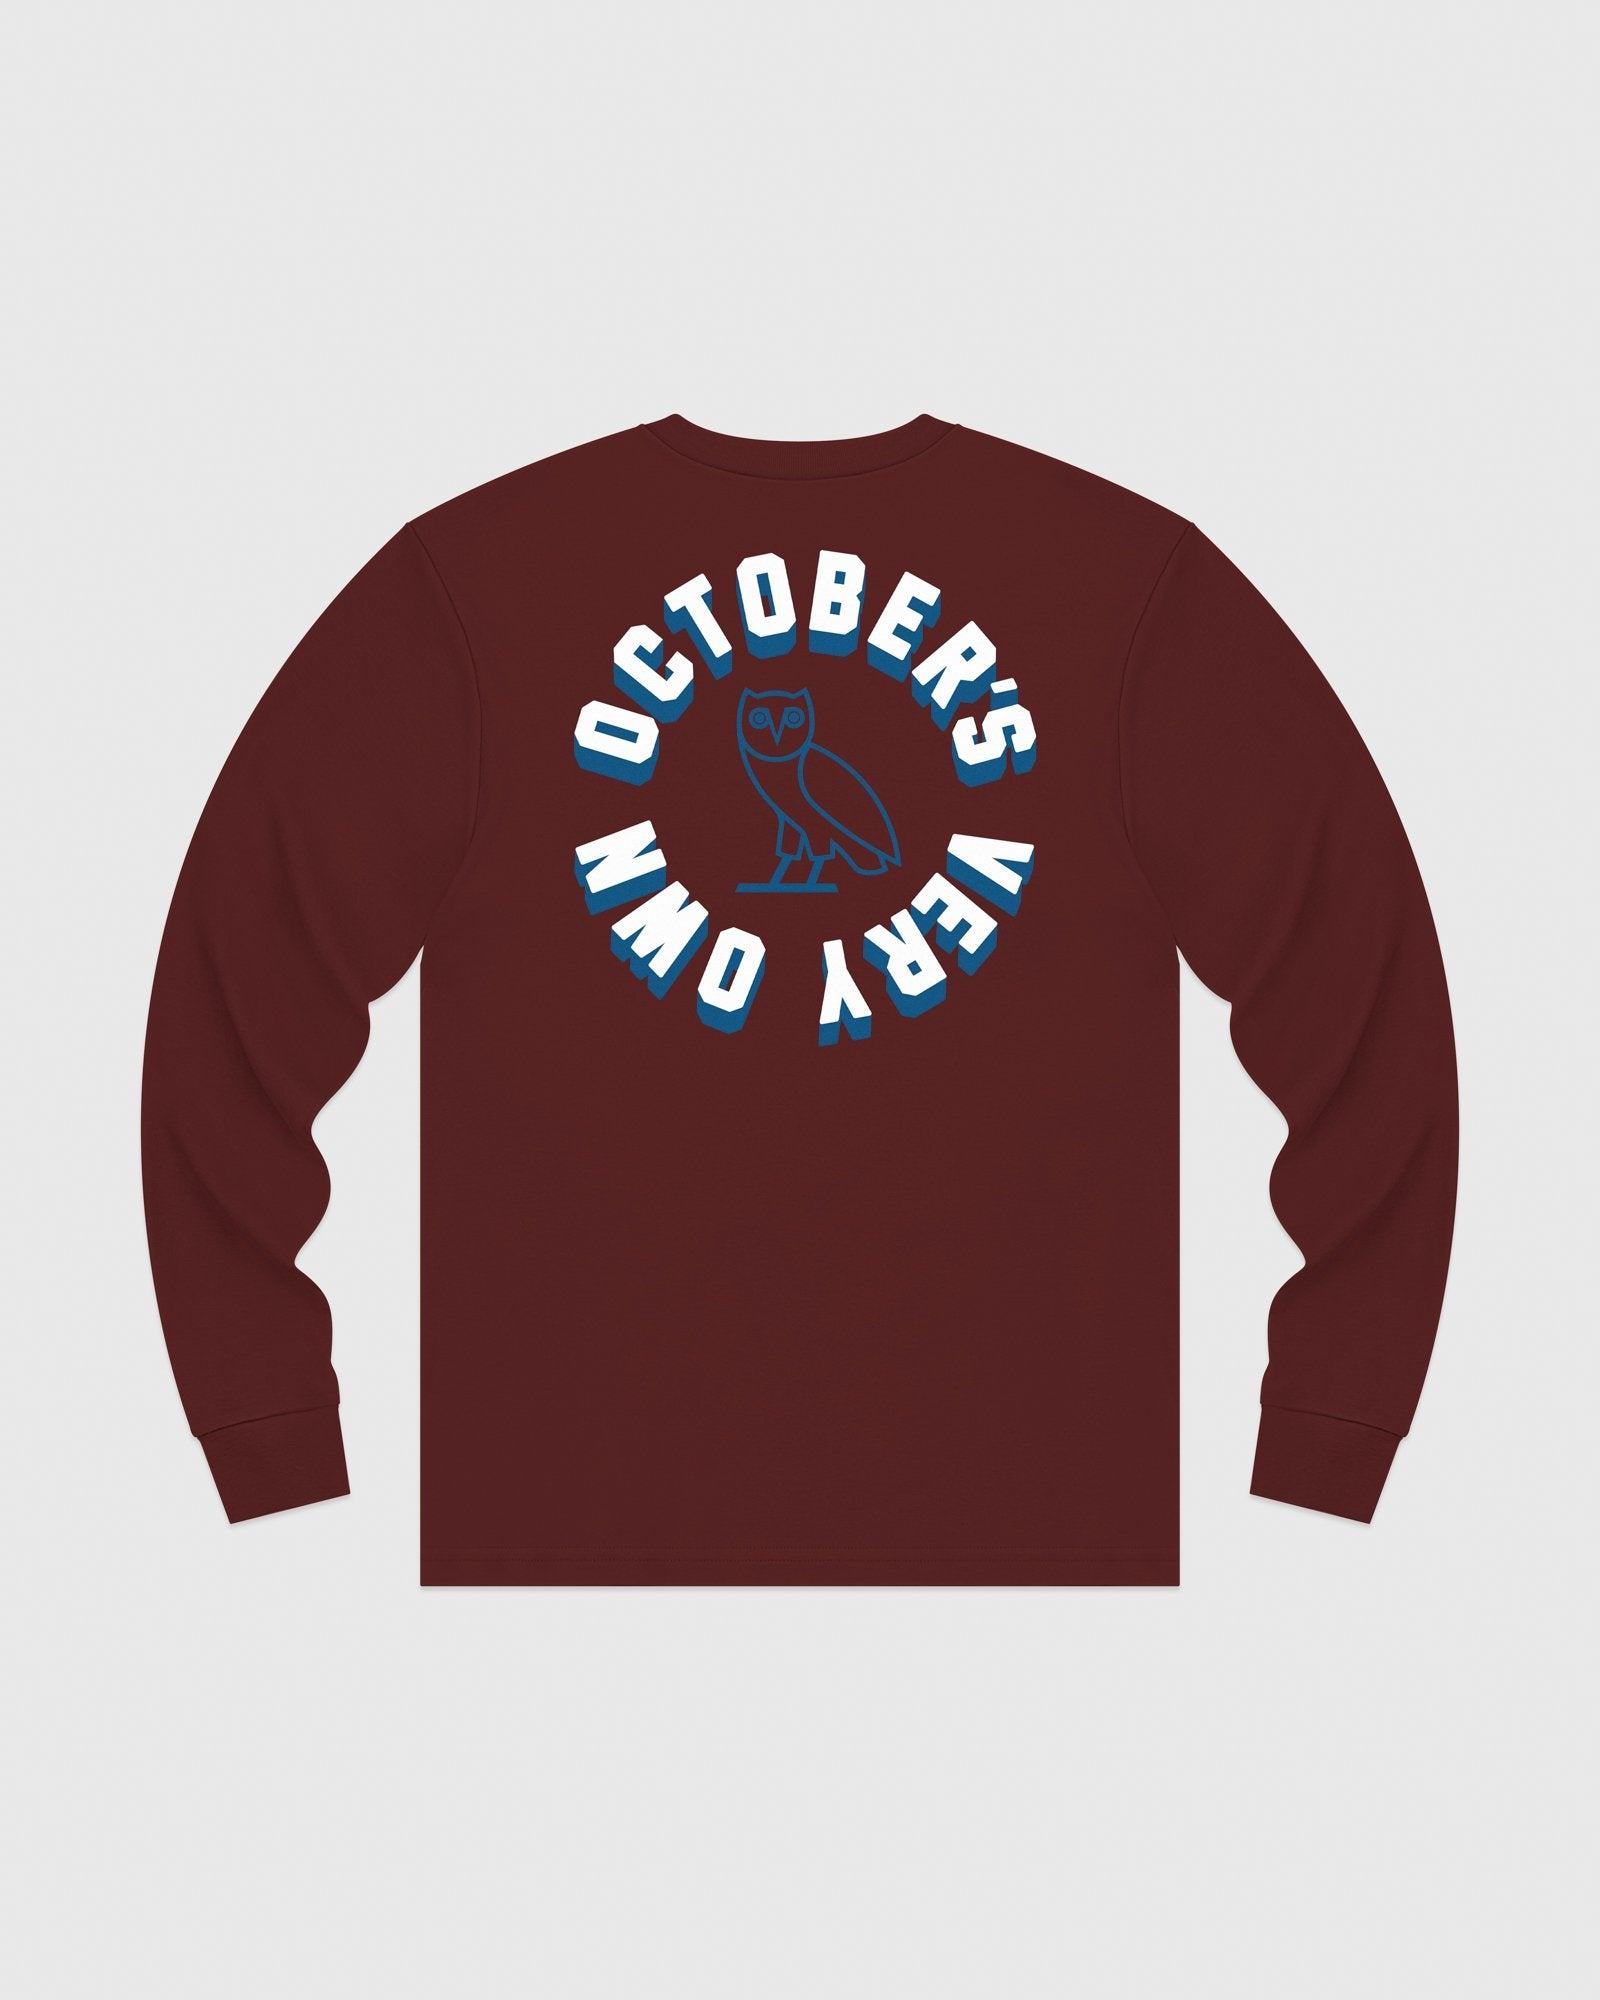 OCTOBER FIRM SHADOW LONGSLEEVE T-SHIRT - BURGUNDY IMAGE #5